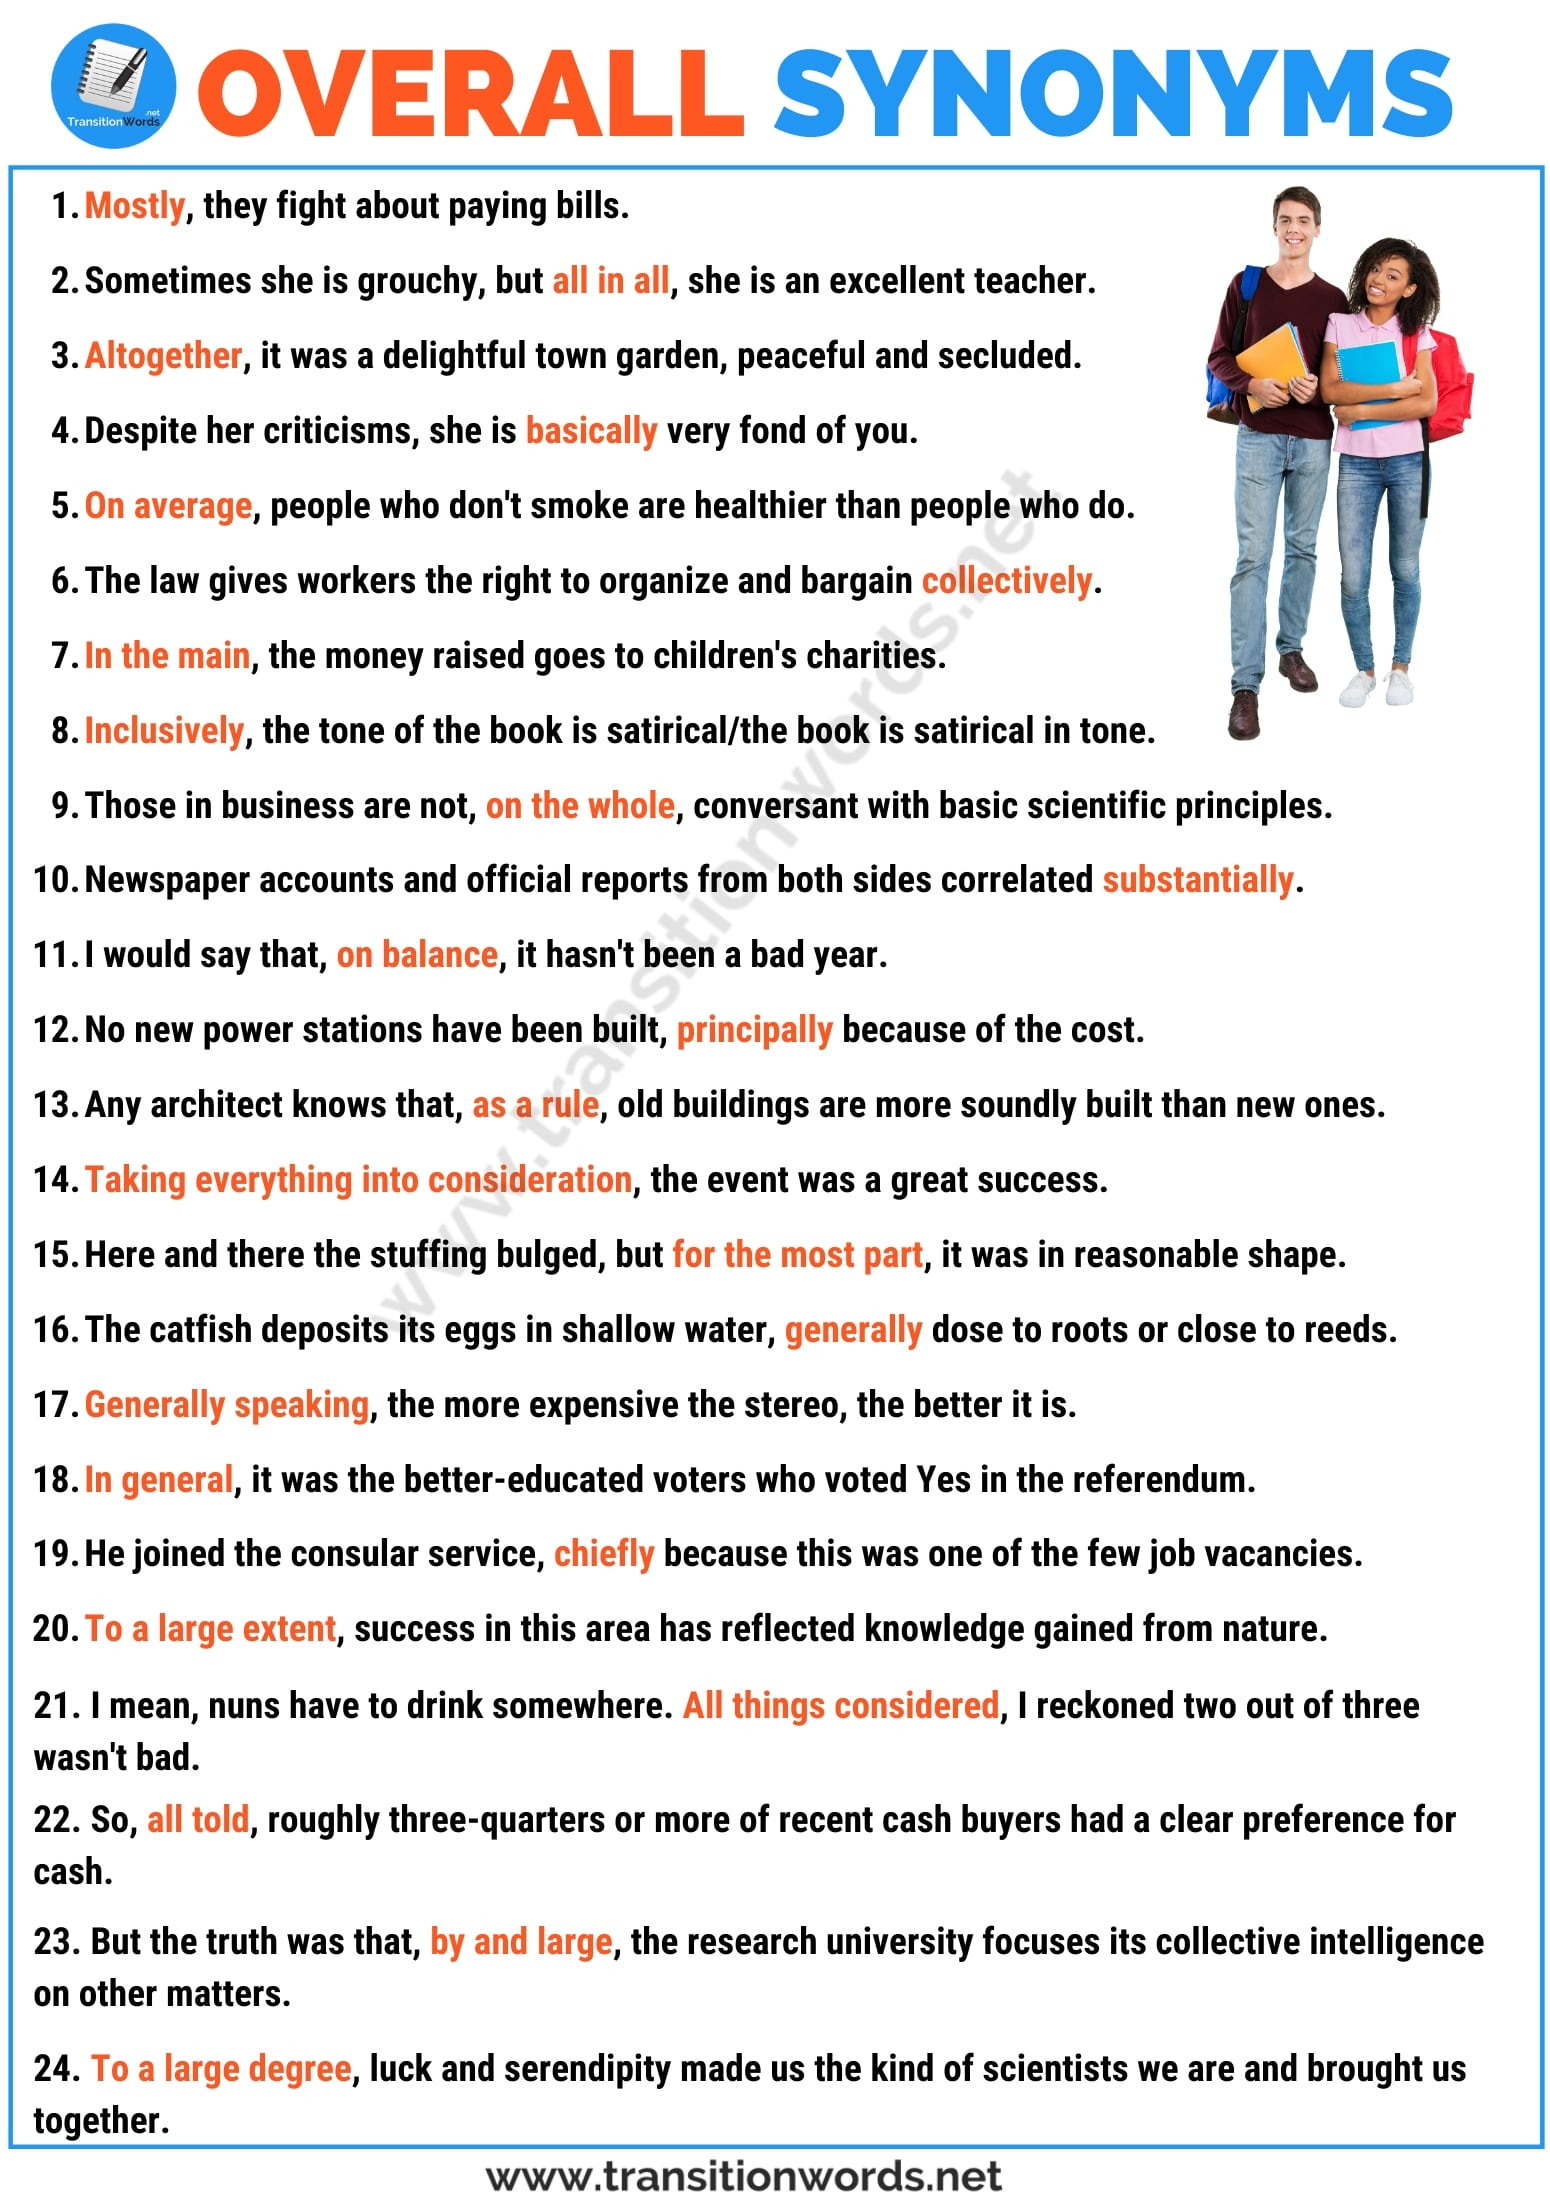 OVERALL Synonym: List of 28 Useful Synonym for Overall with Examples